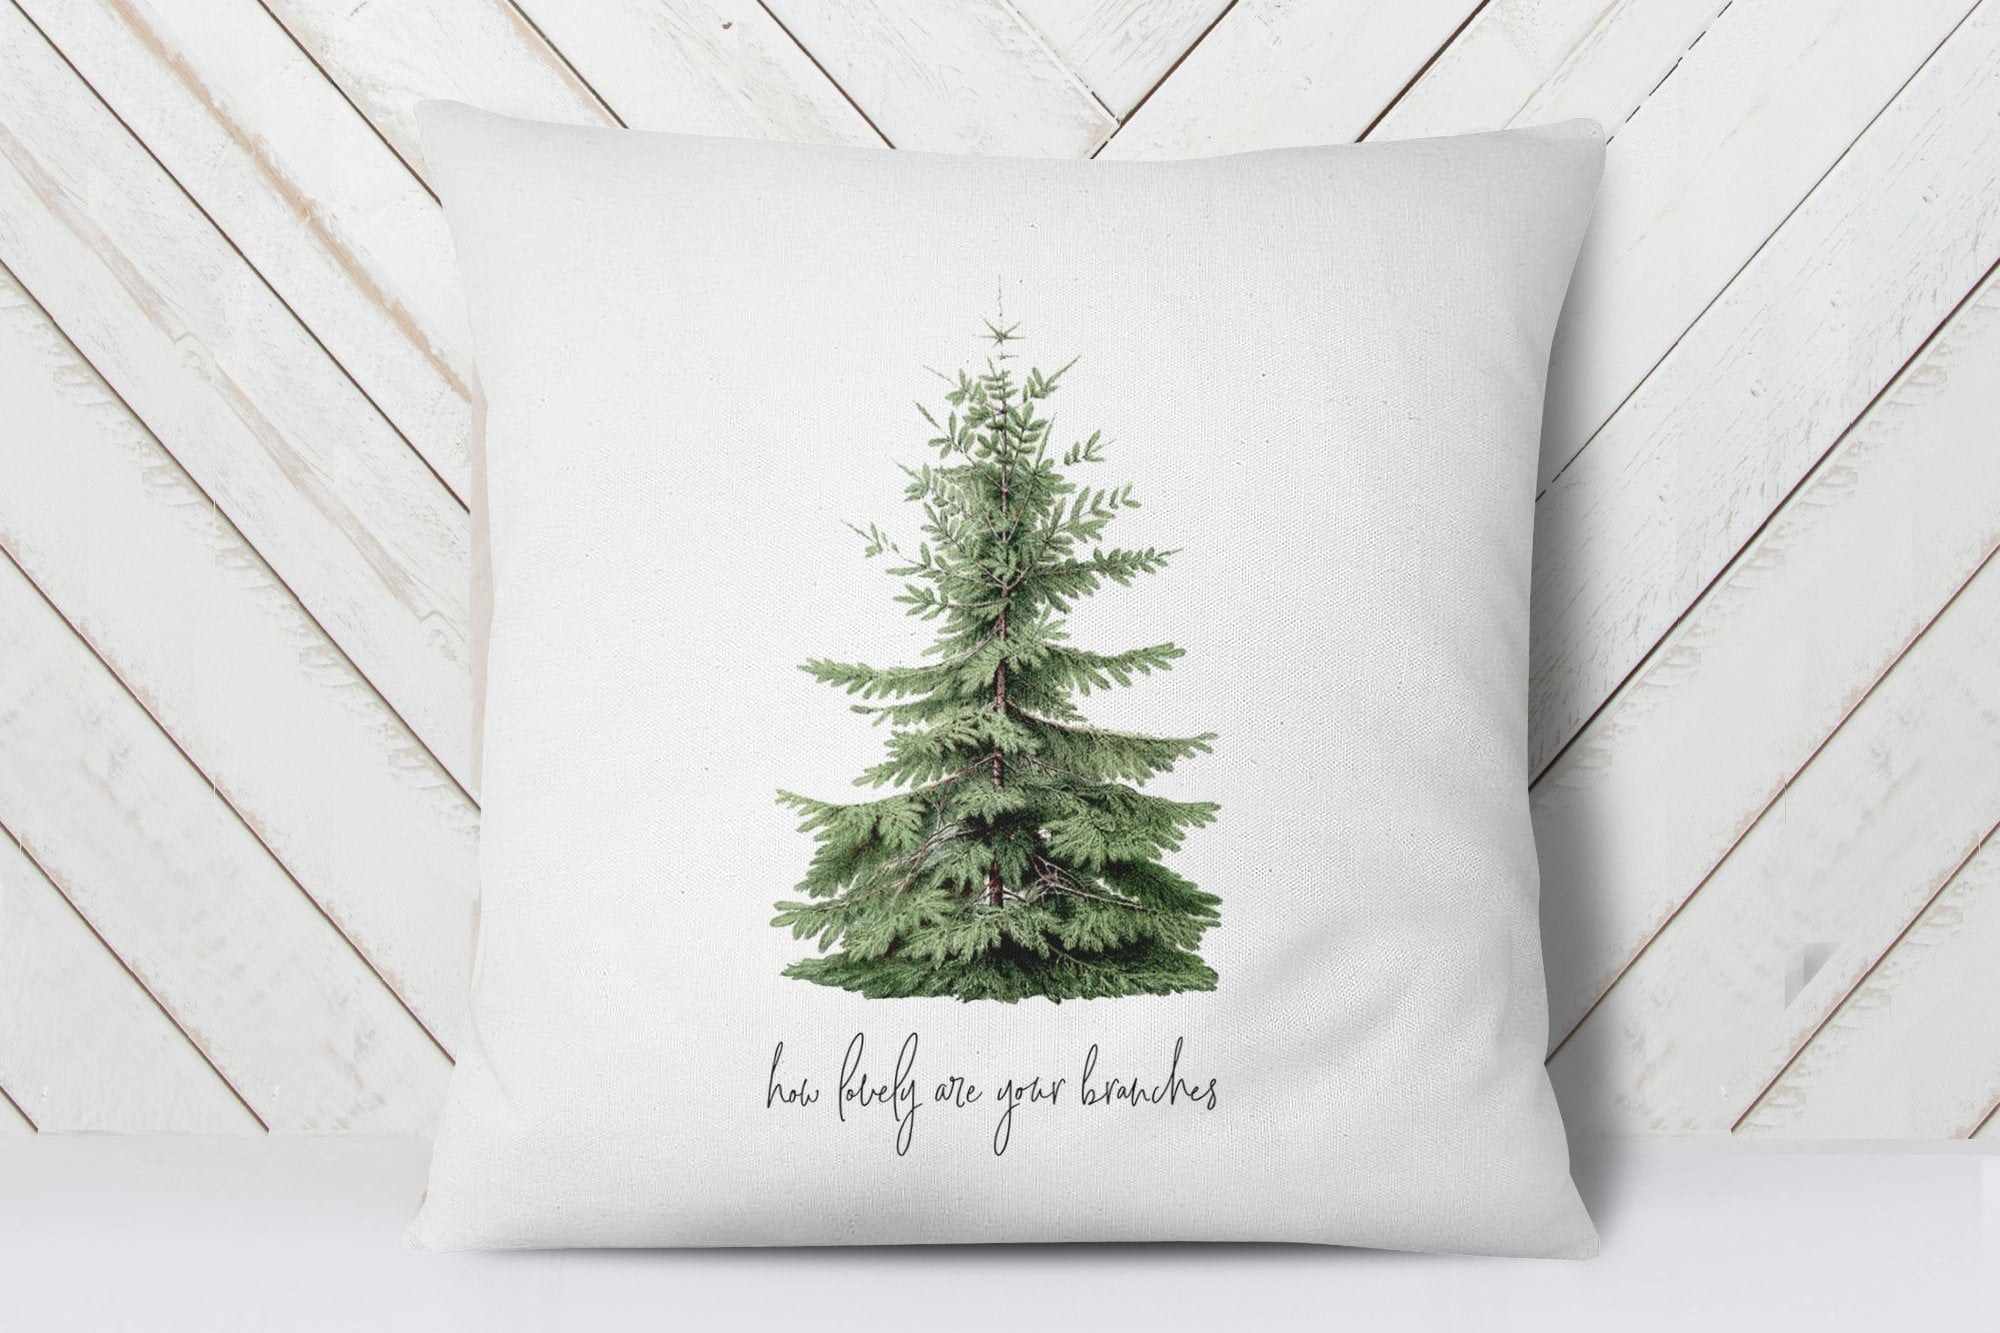 Holiday Pillows | O Christmas Tree Pillow | Ollie + Hank